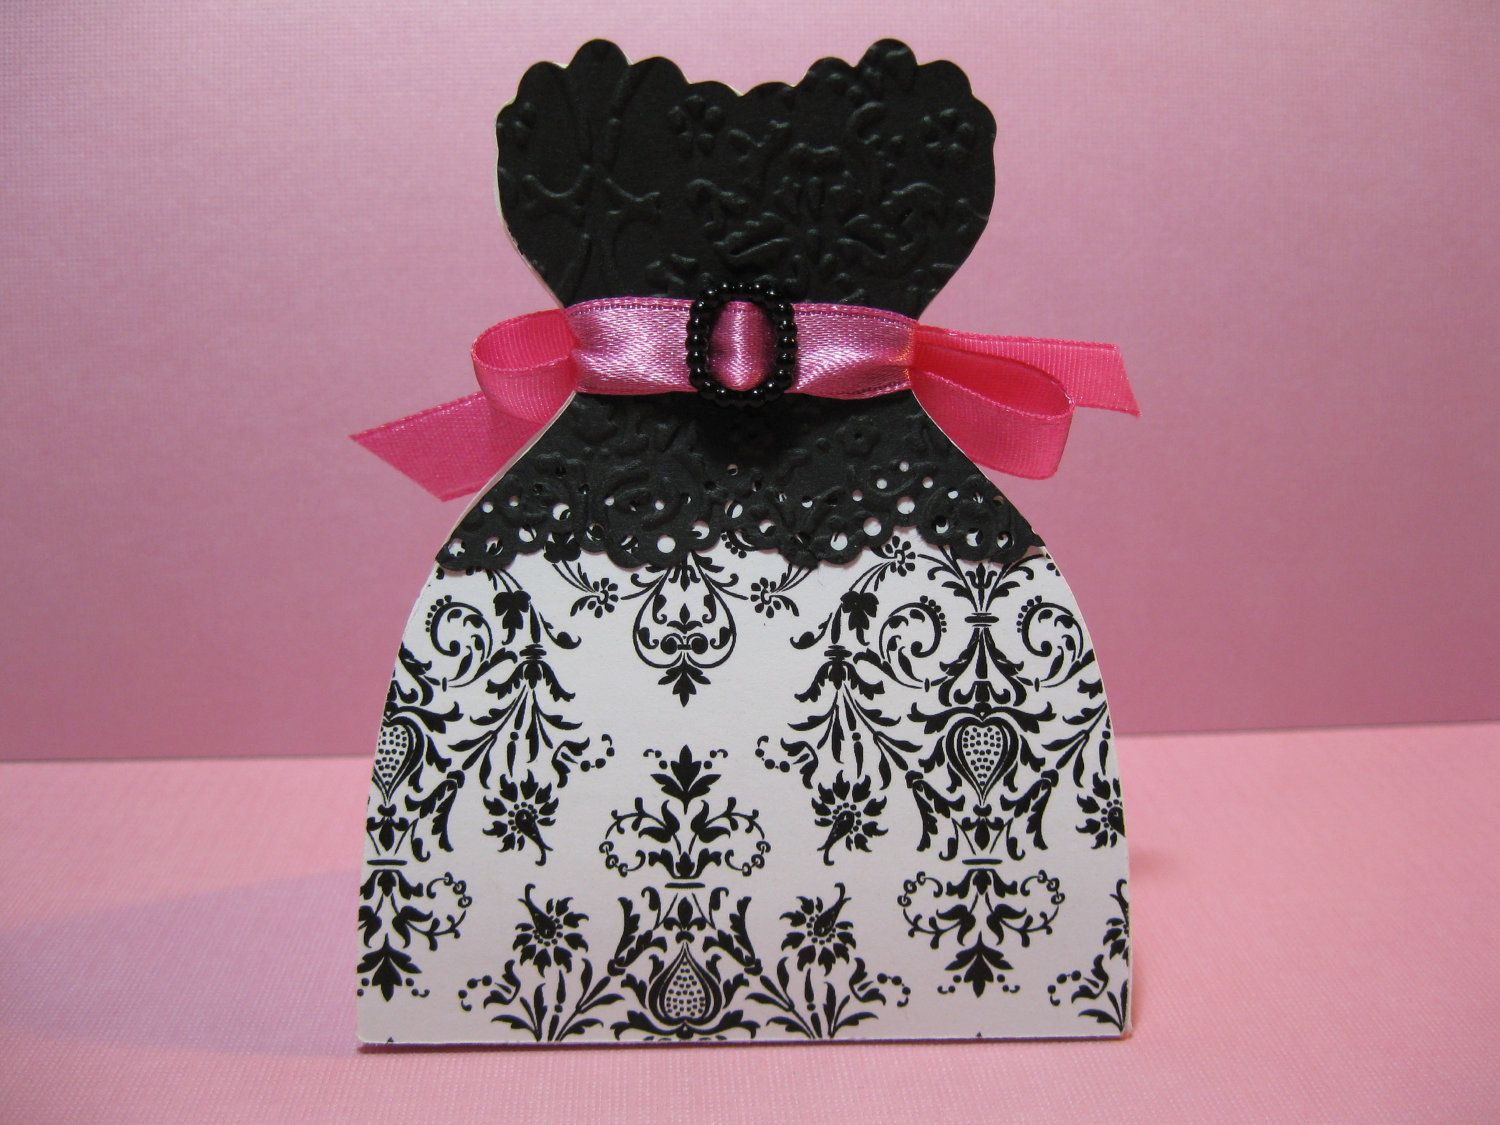 10 Black And White Damask Wedding Black Pink Damask Bride